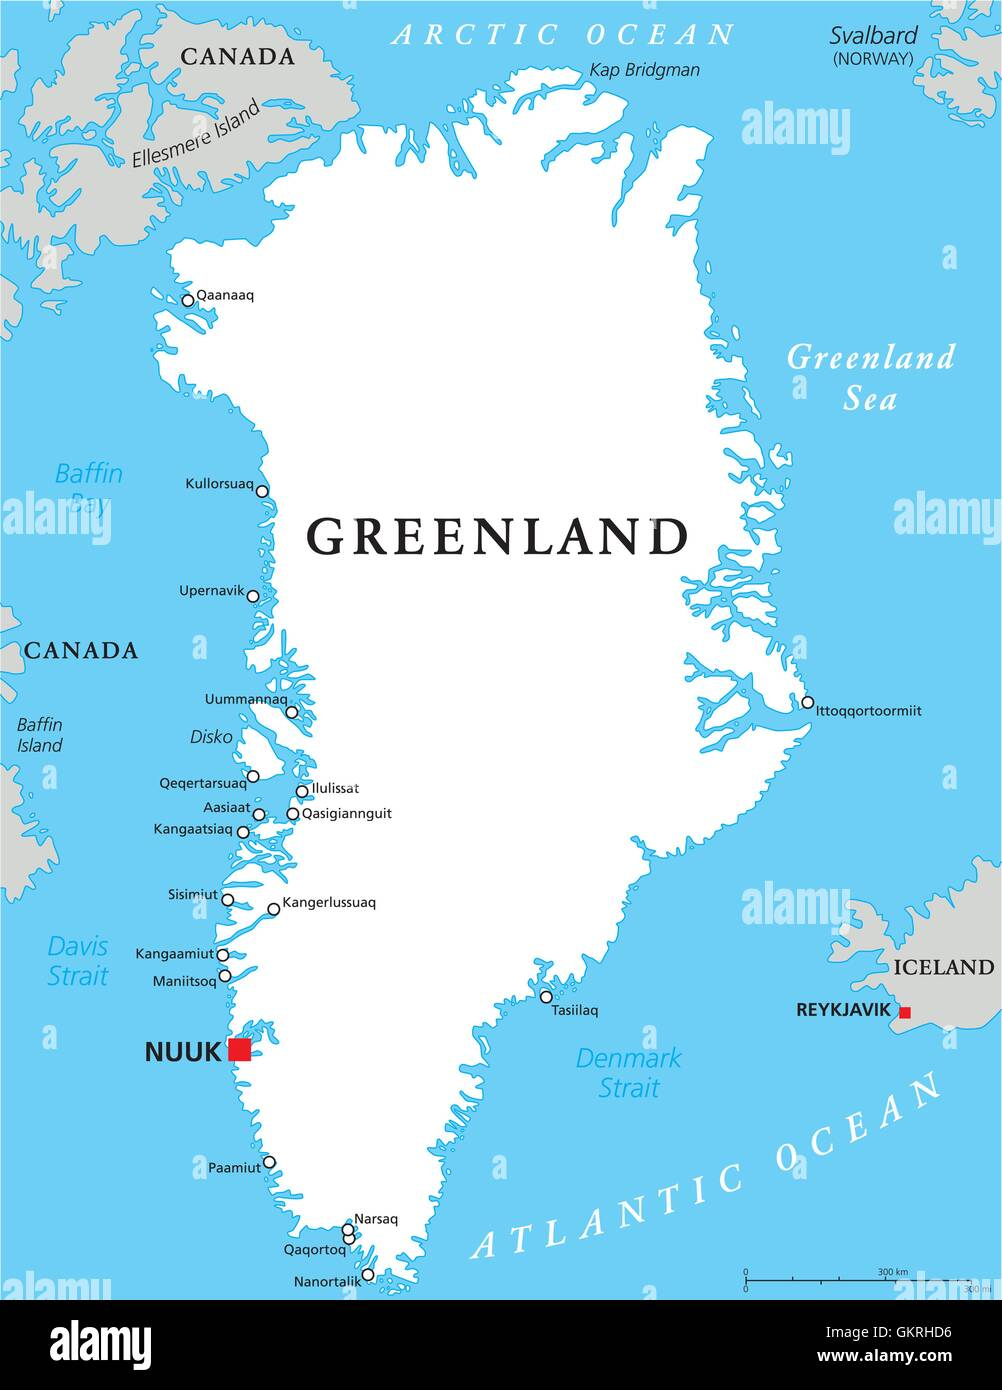 arctic greenland denmark map atlas map of the world travel arctic ...